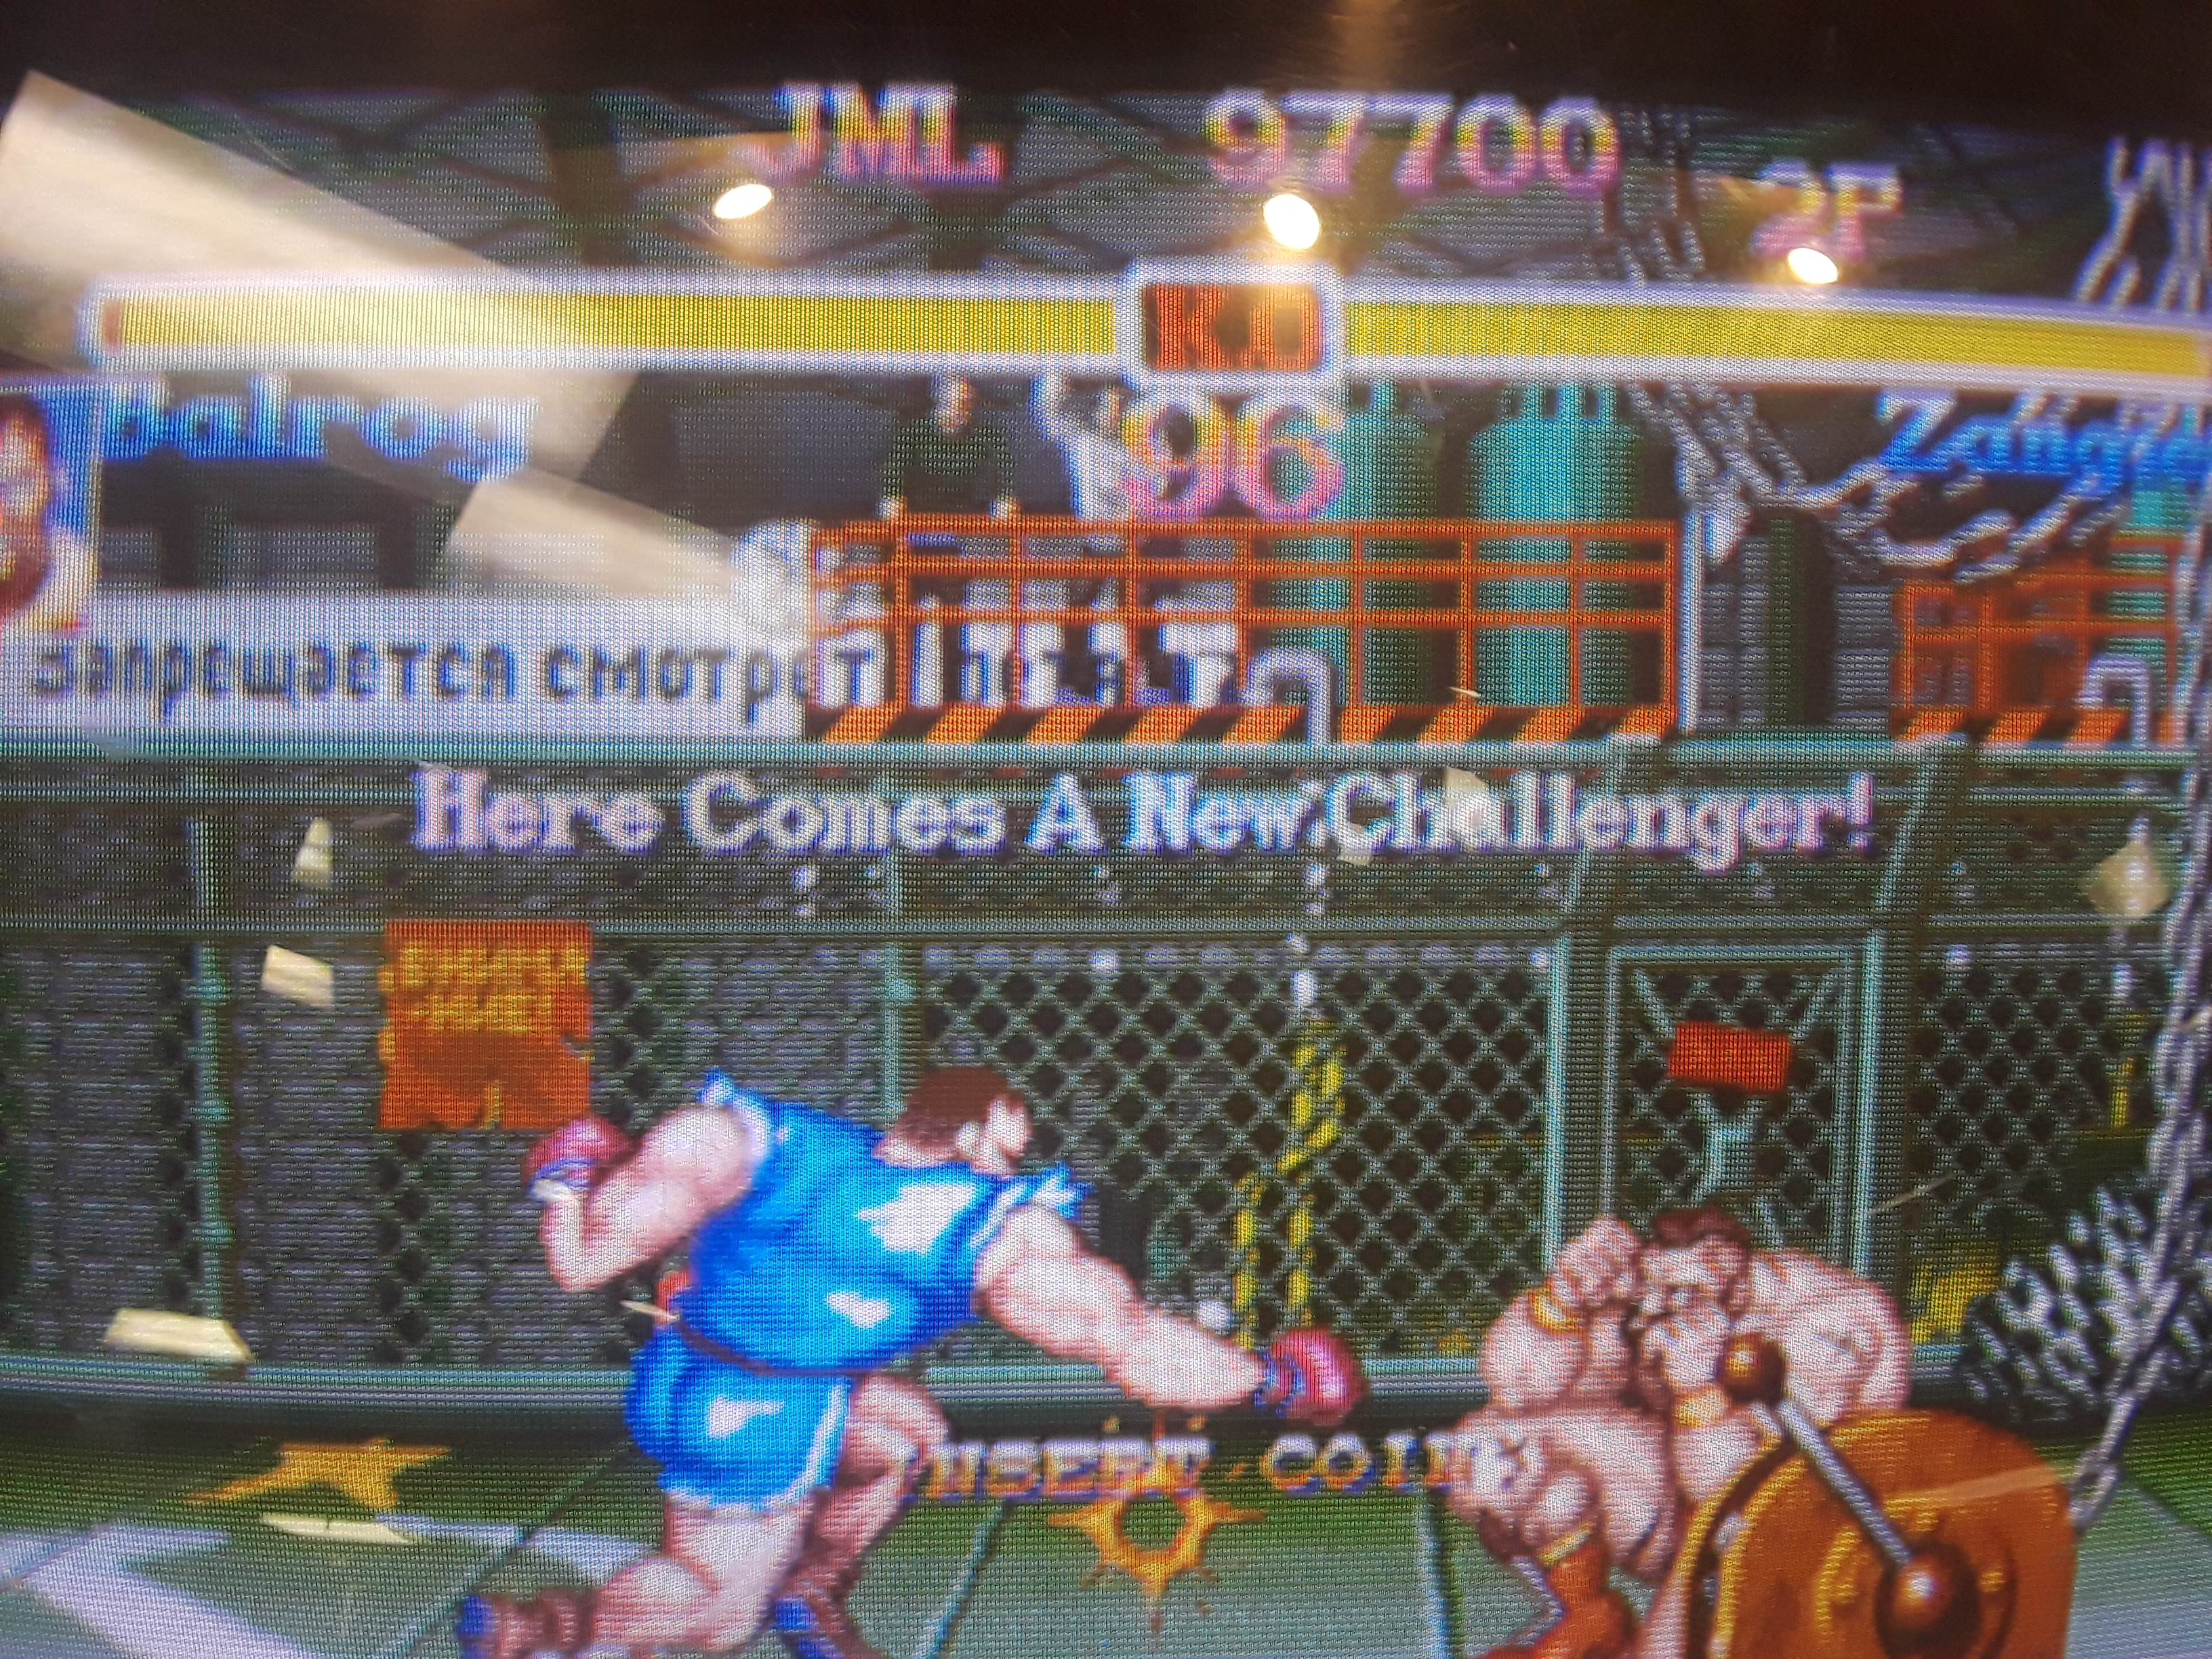 JML101582: Super Street Fighter II: The New Challengers (Arcade) 97,700 points on 2018-11-16 21:04:31